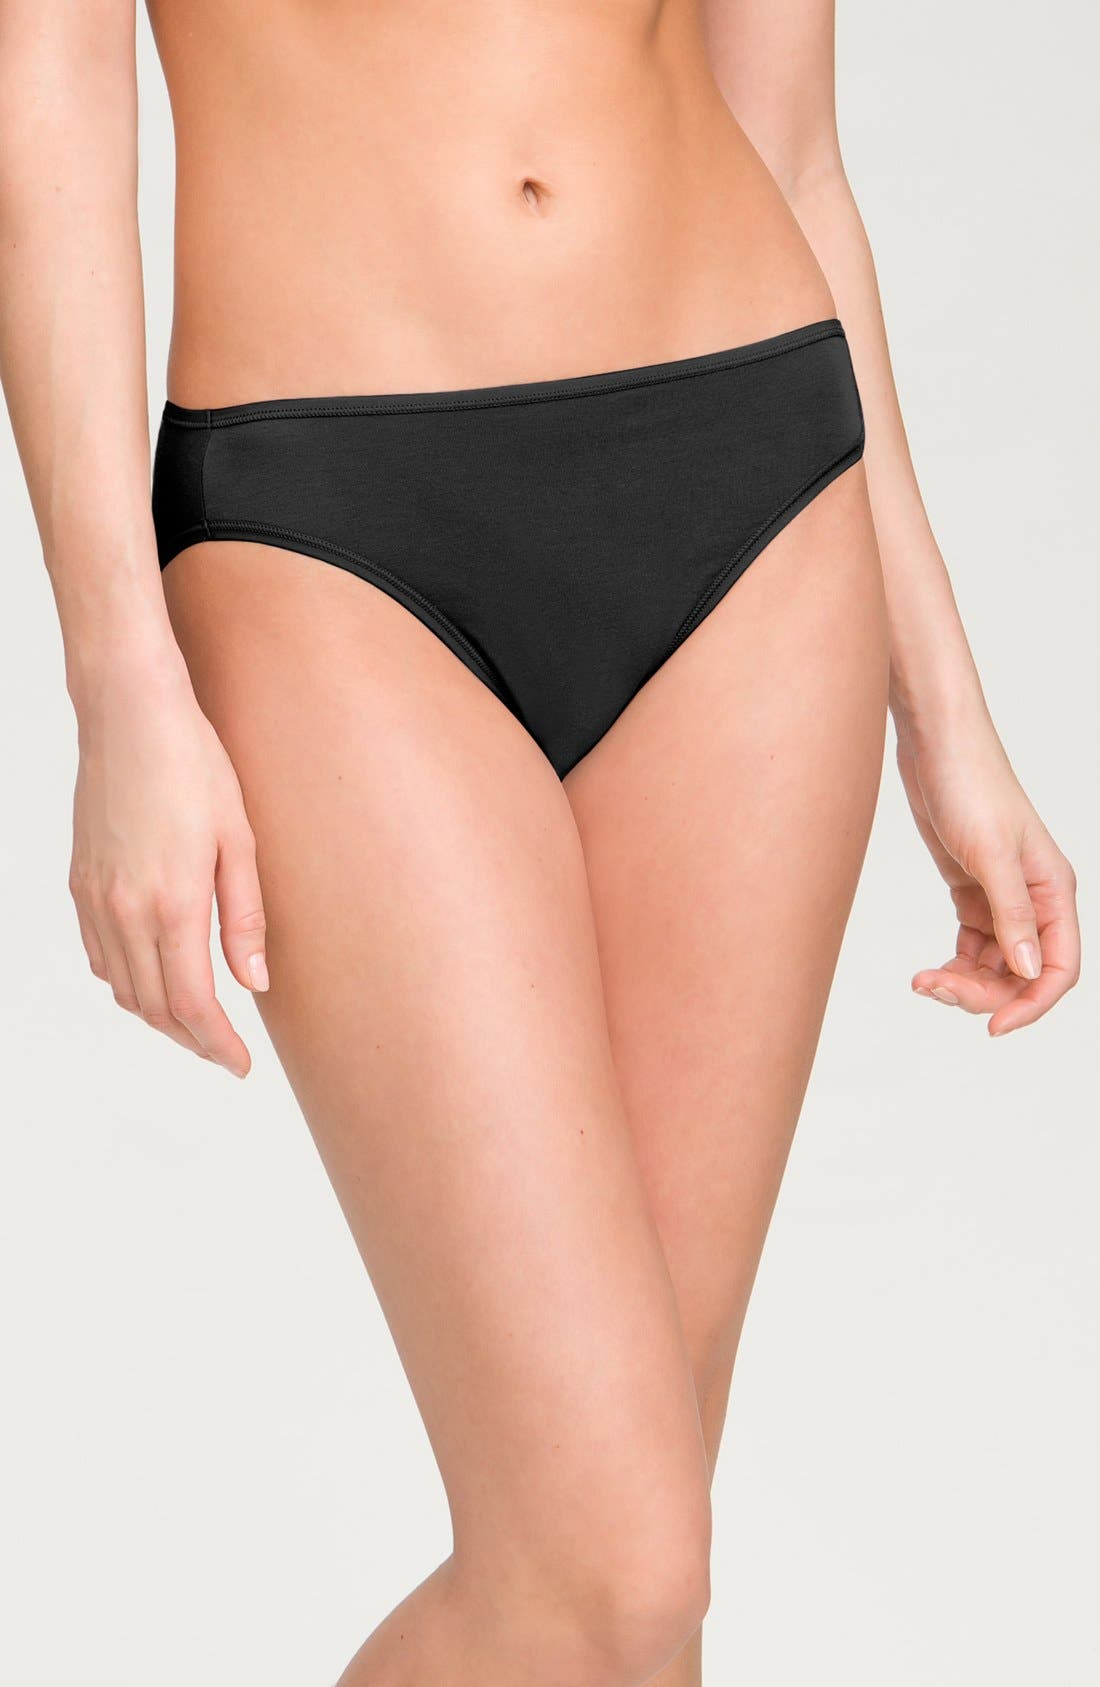 Alternate Image 1 Selected - Shimera 'Comfort' Stretch Cotton High Cut Briefs